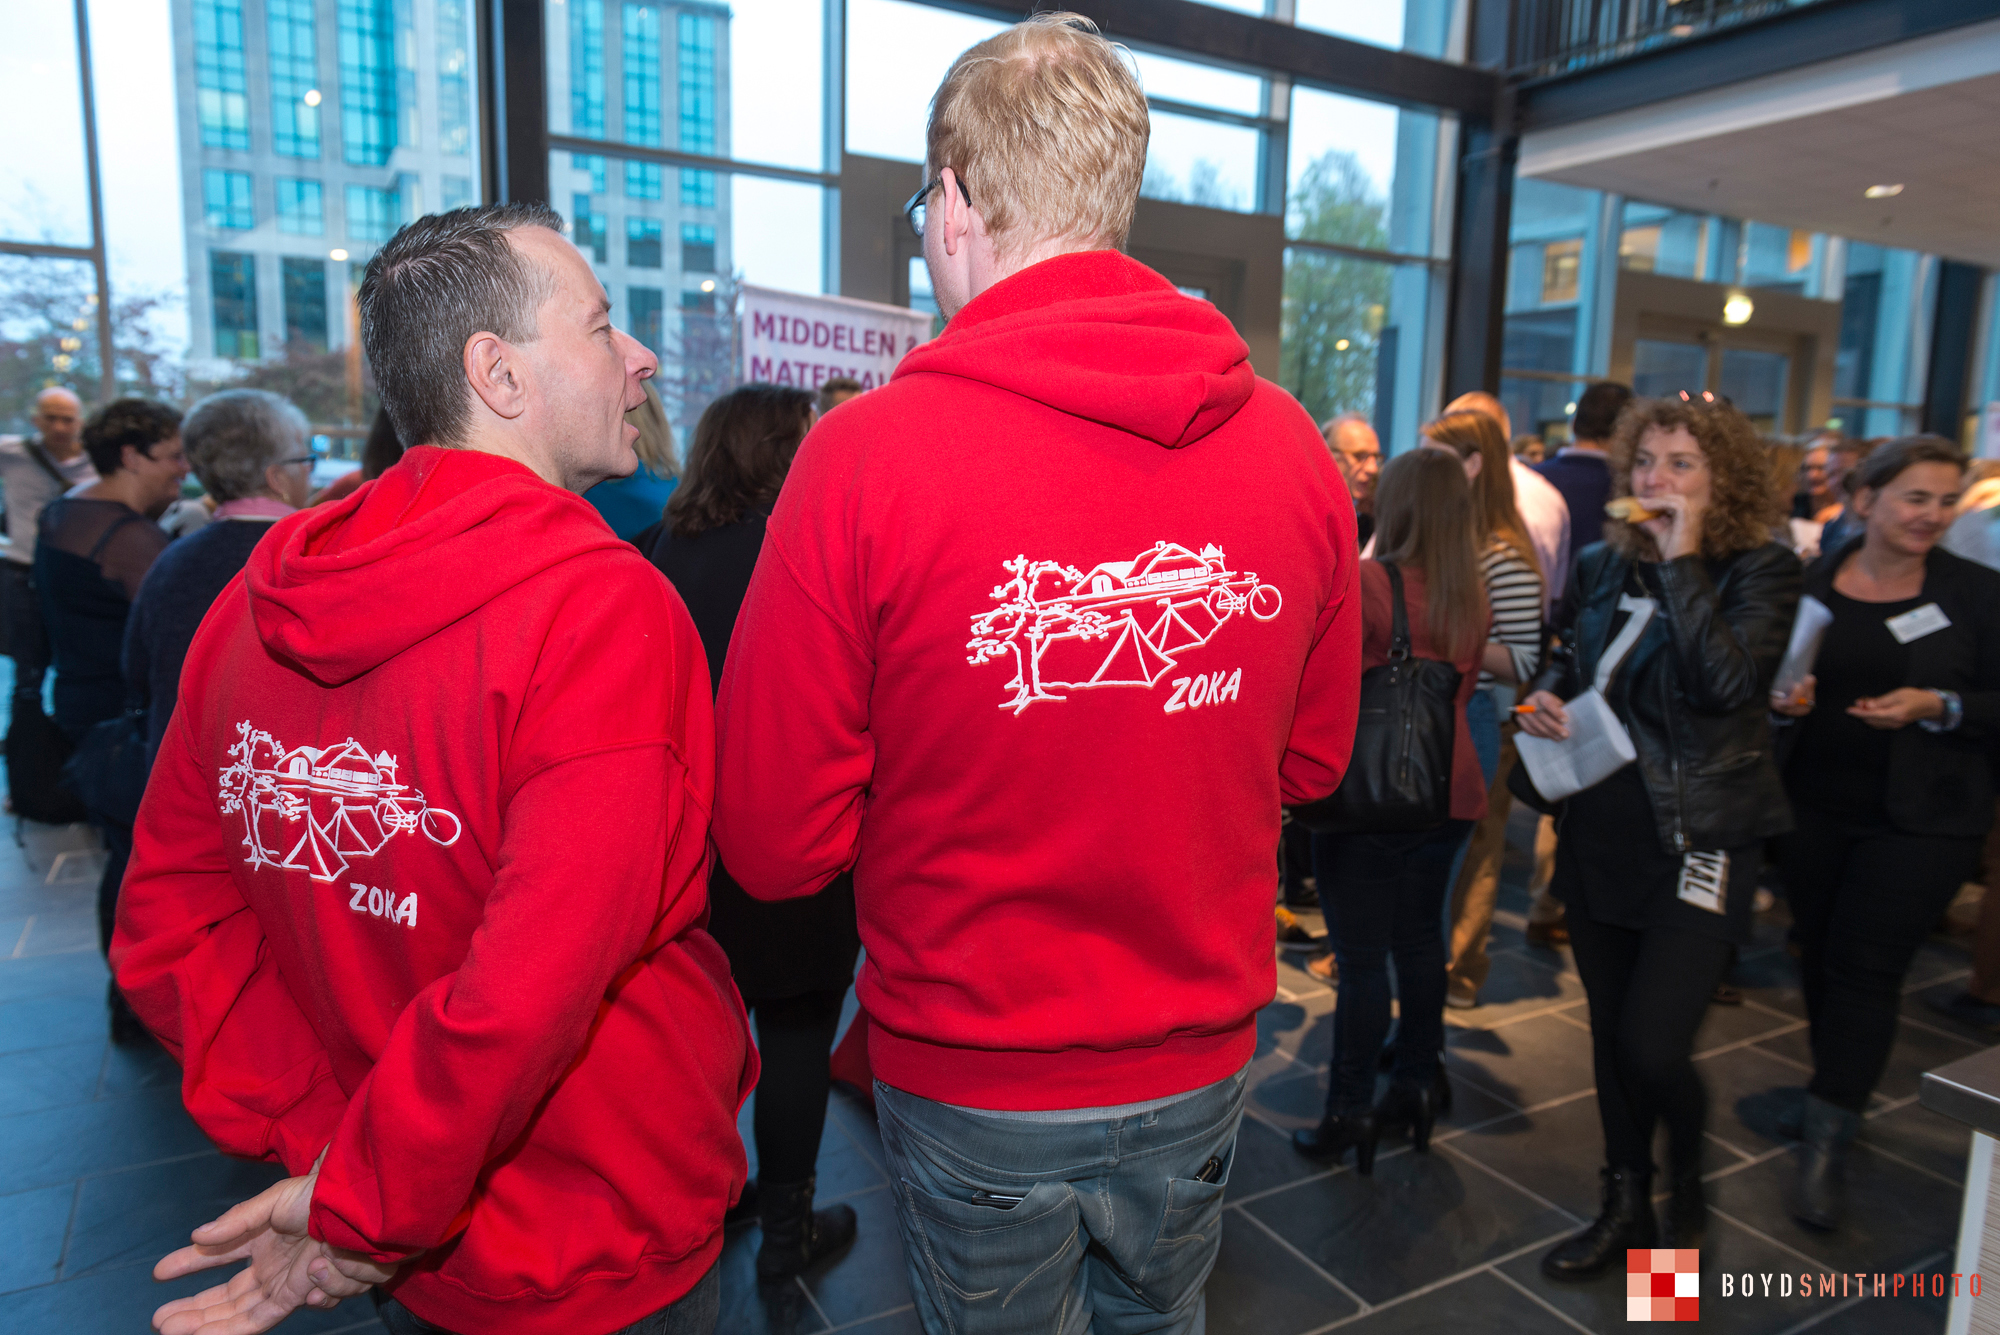 MEET EN MATCH | 24 OKTOBER | AVANS HOGESCHOOL